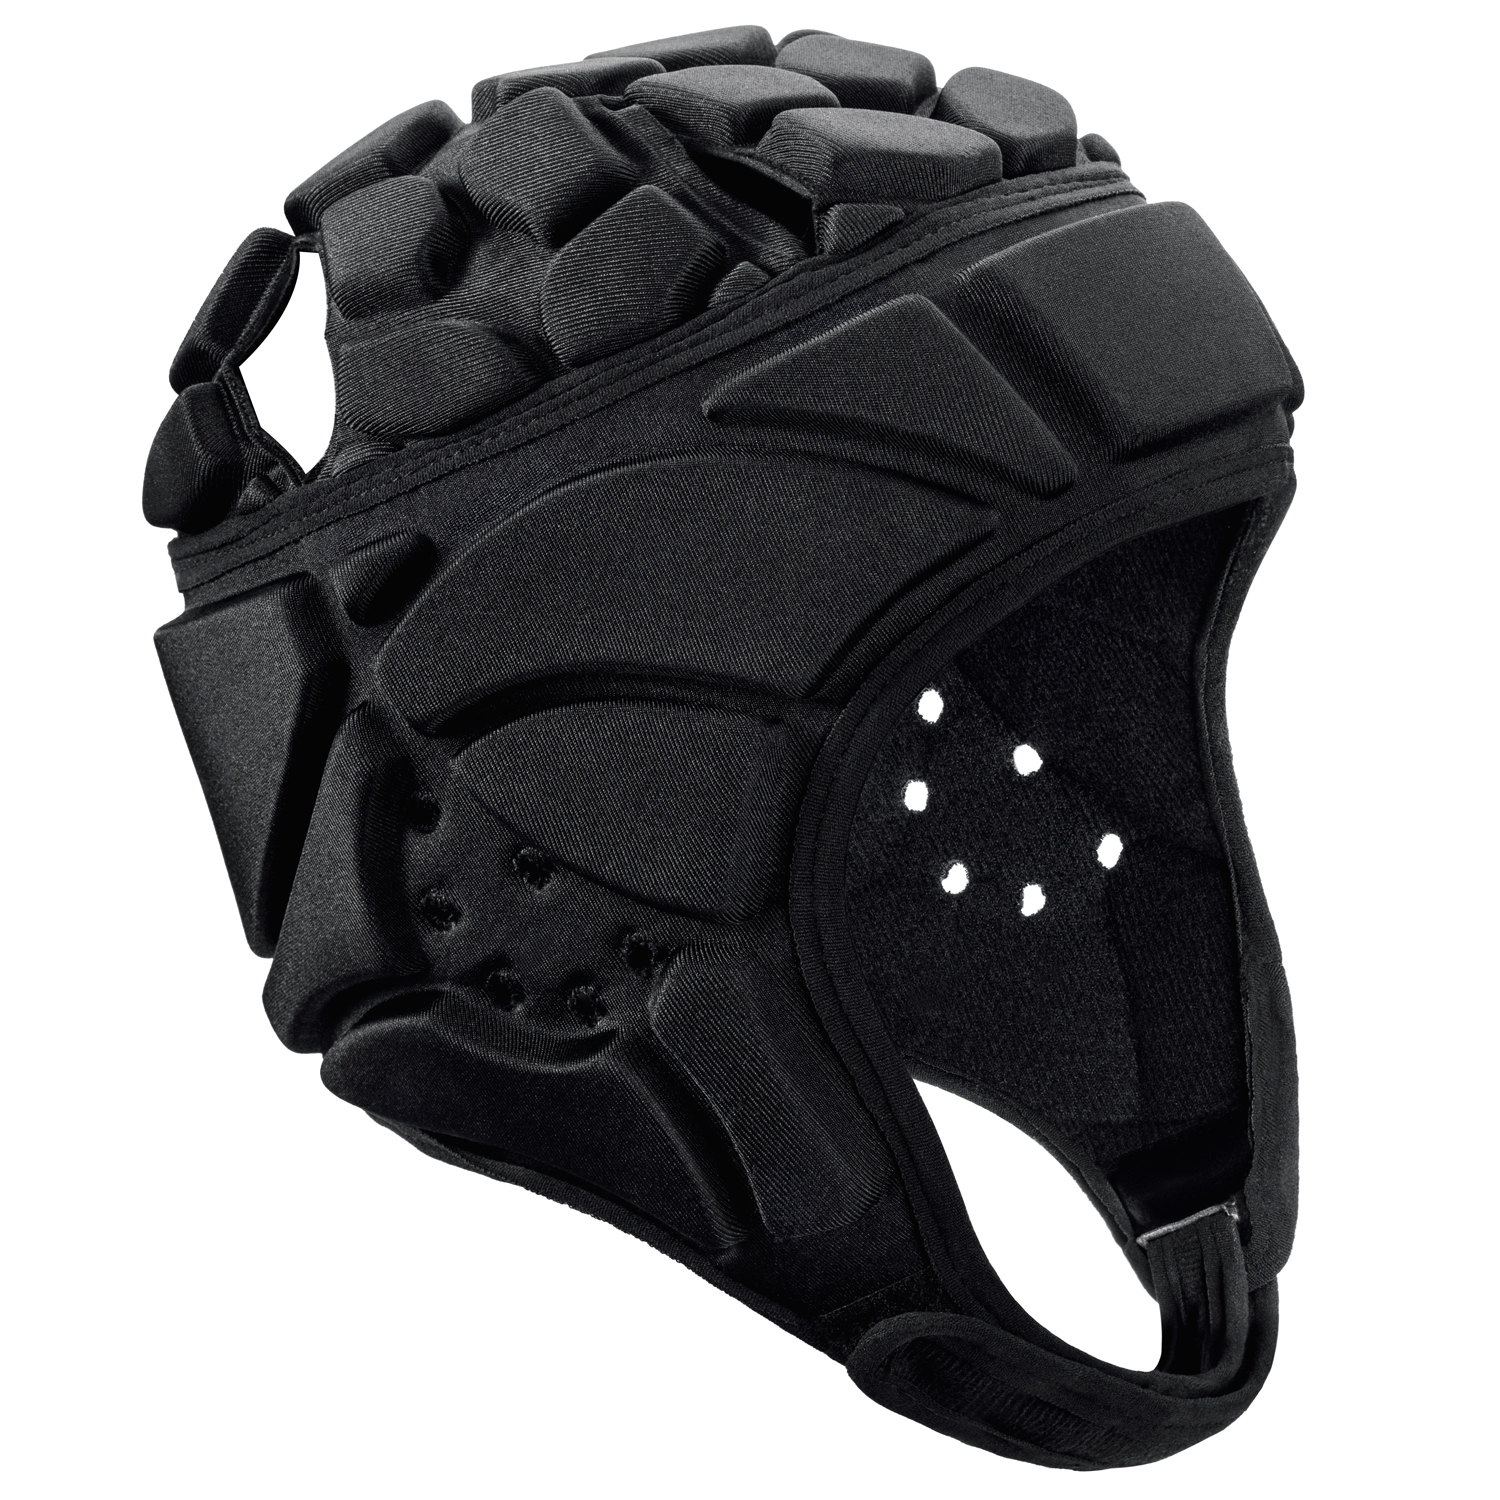 Soccer Goalie Helmet, Soft Padded Headgear Protection for Flag <strong>Football</strong>, Team Sports, Training, Rugby, Lacrosse, Goalkeeper